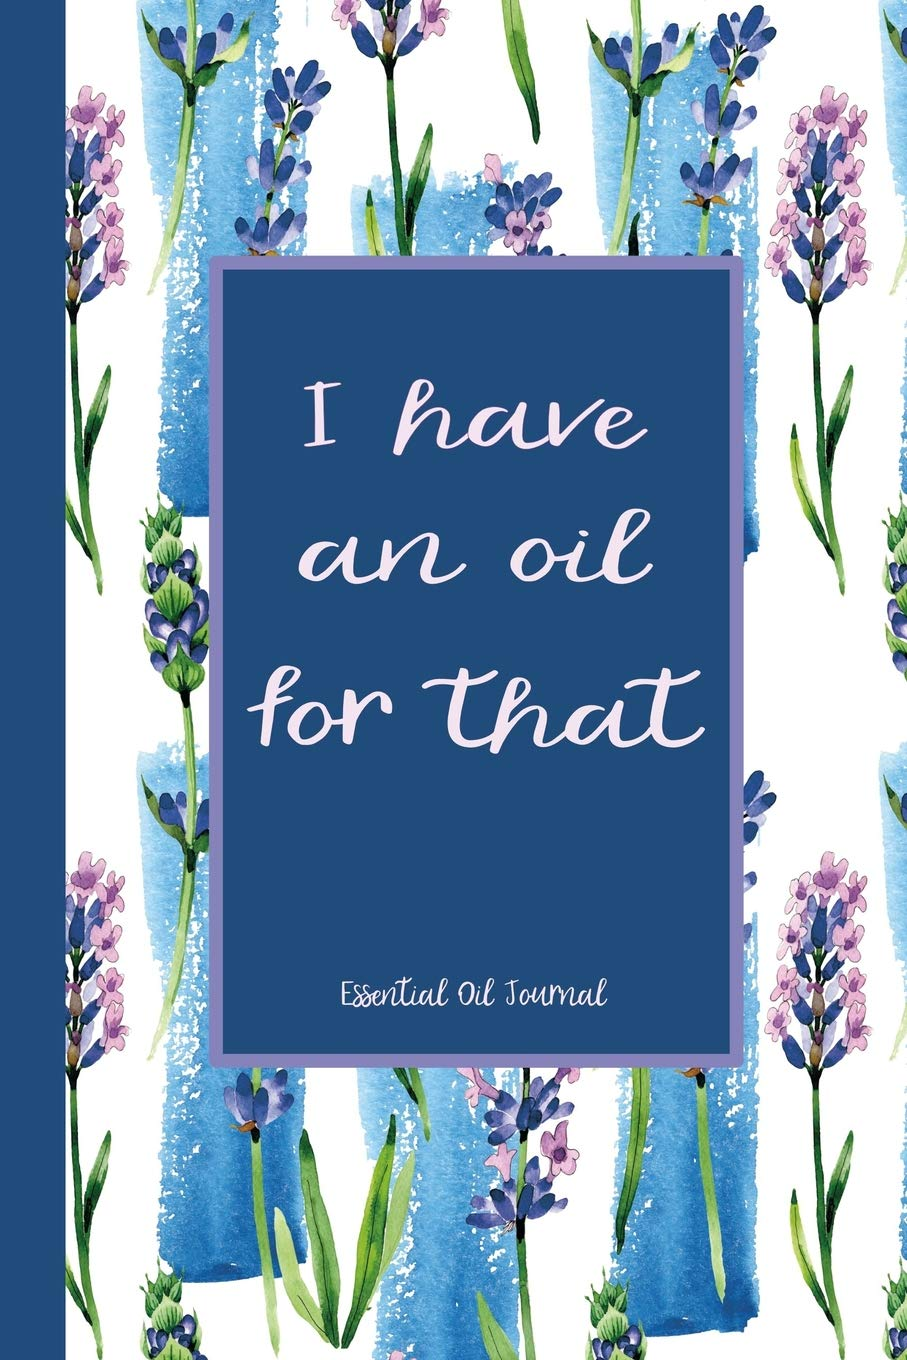 Essential Oils Journal  Track Inventory Favorite Oils Blend Recipes And Rate New Blends With This Beautiful Essential Oil Notebook Organizer With An I Have An Oil For That Quote.